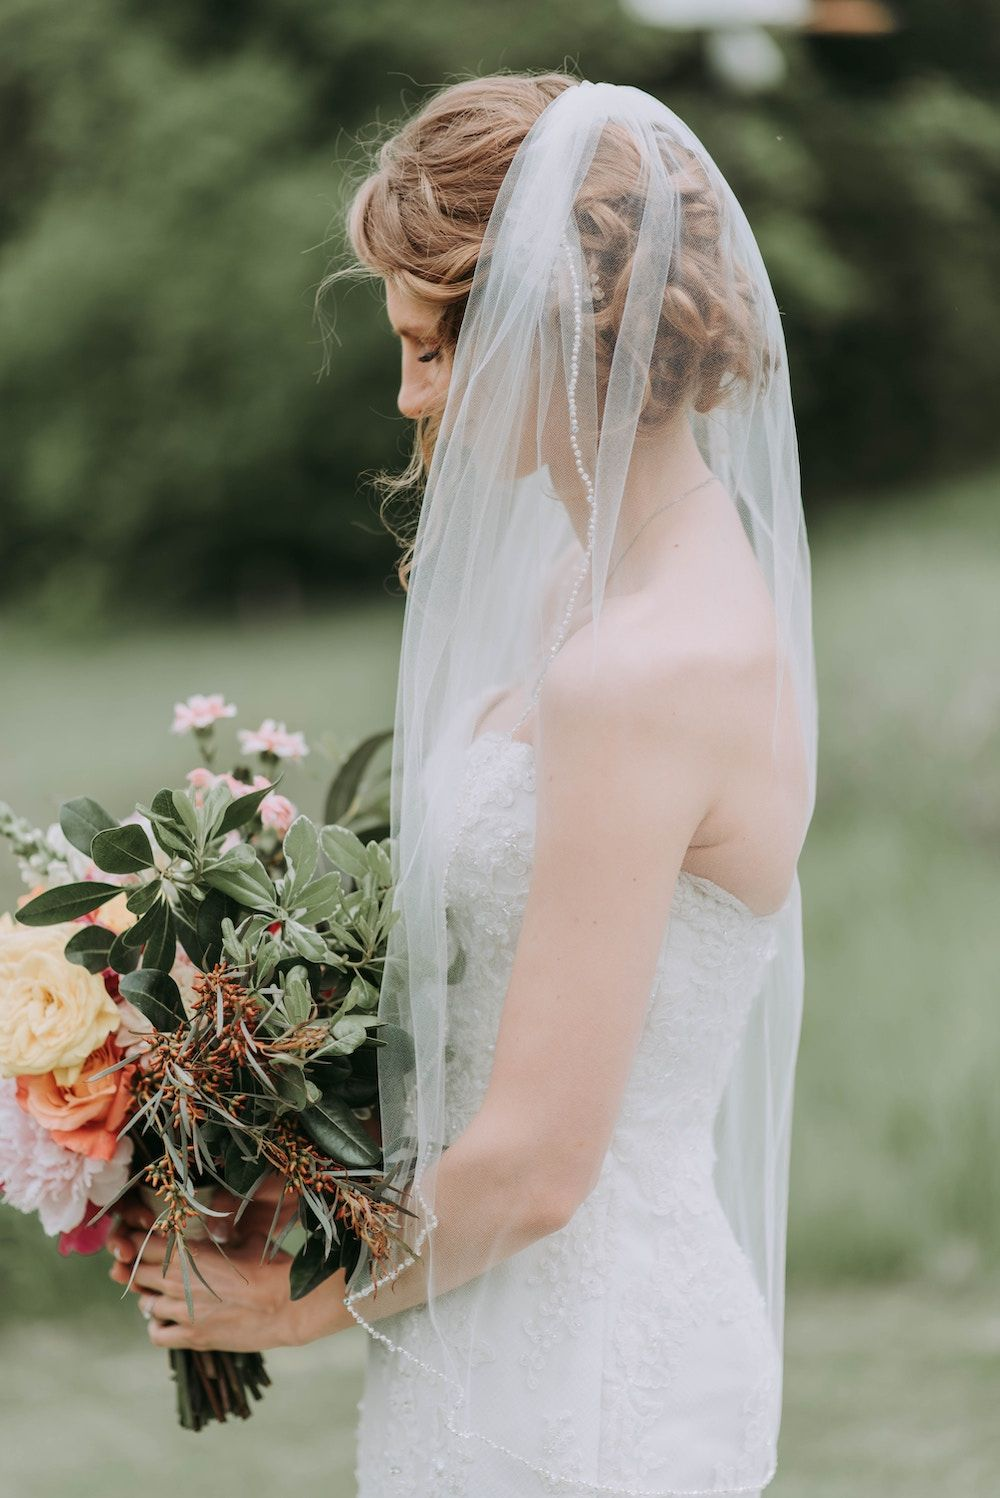 bride wearing veil and holding bouquet